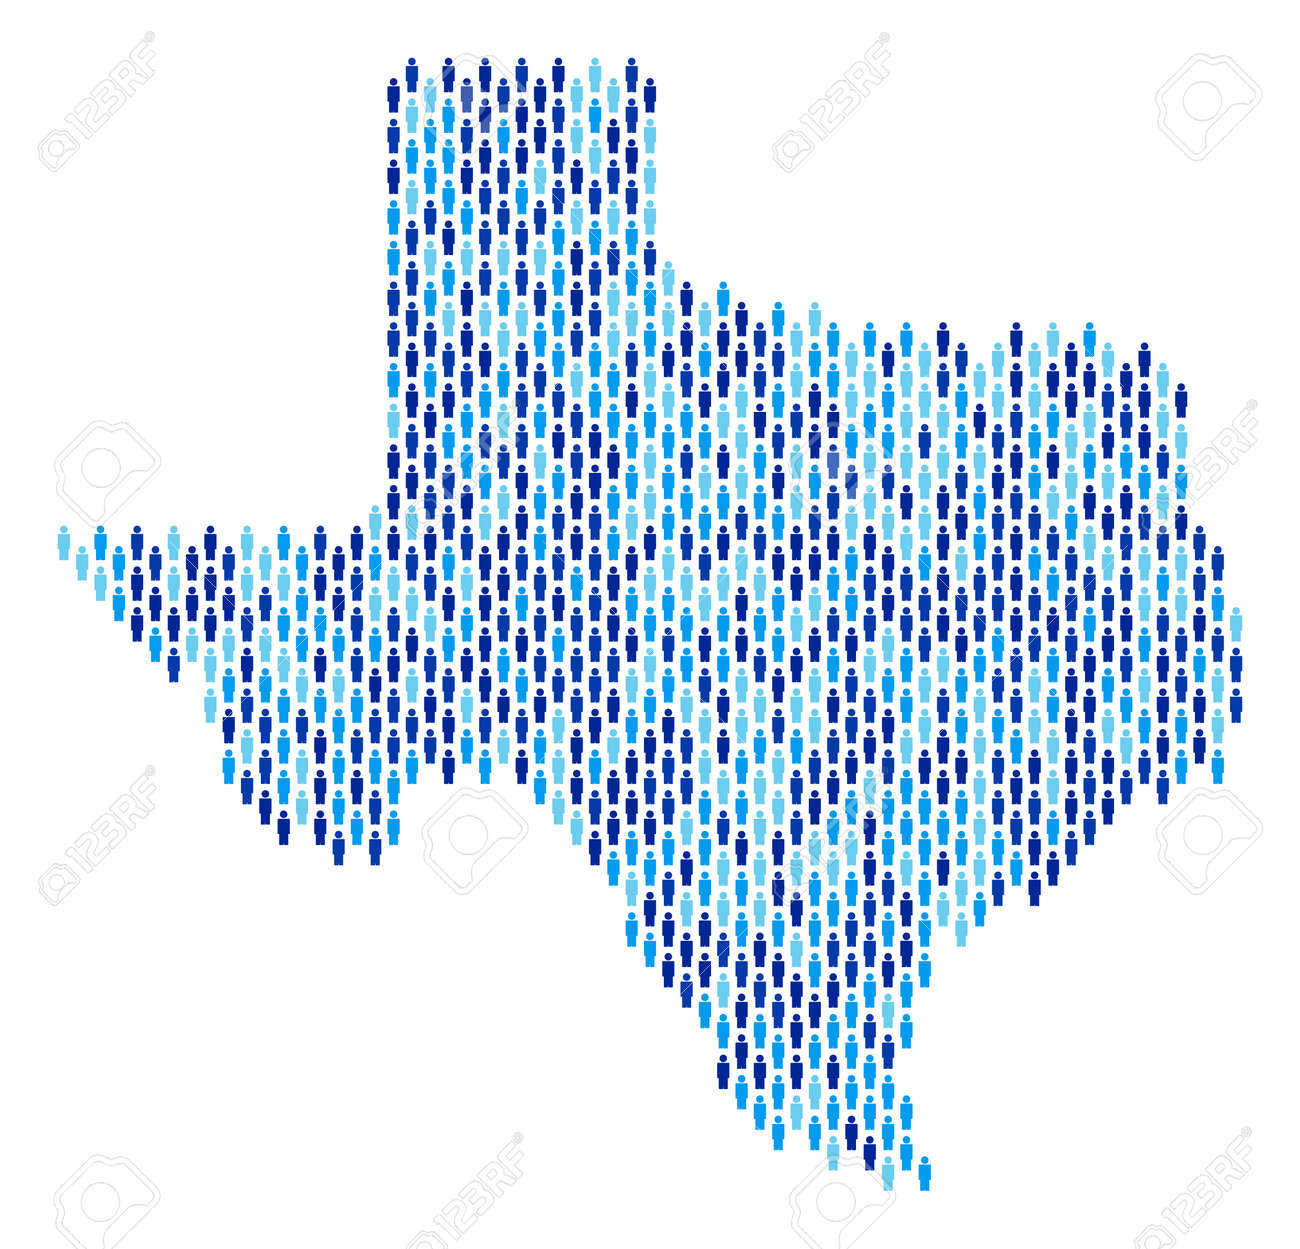 Population Map Of Texas.Population Texas Map Demography Vector Collage Of Texas Map